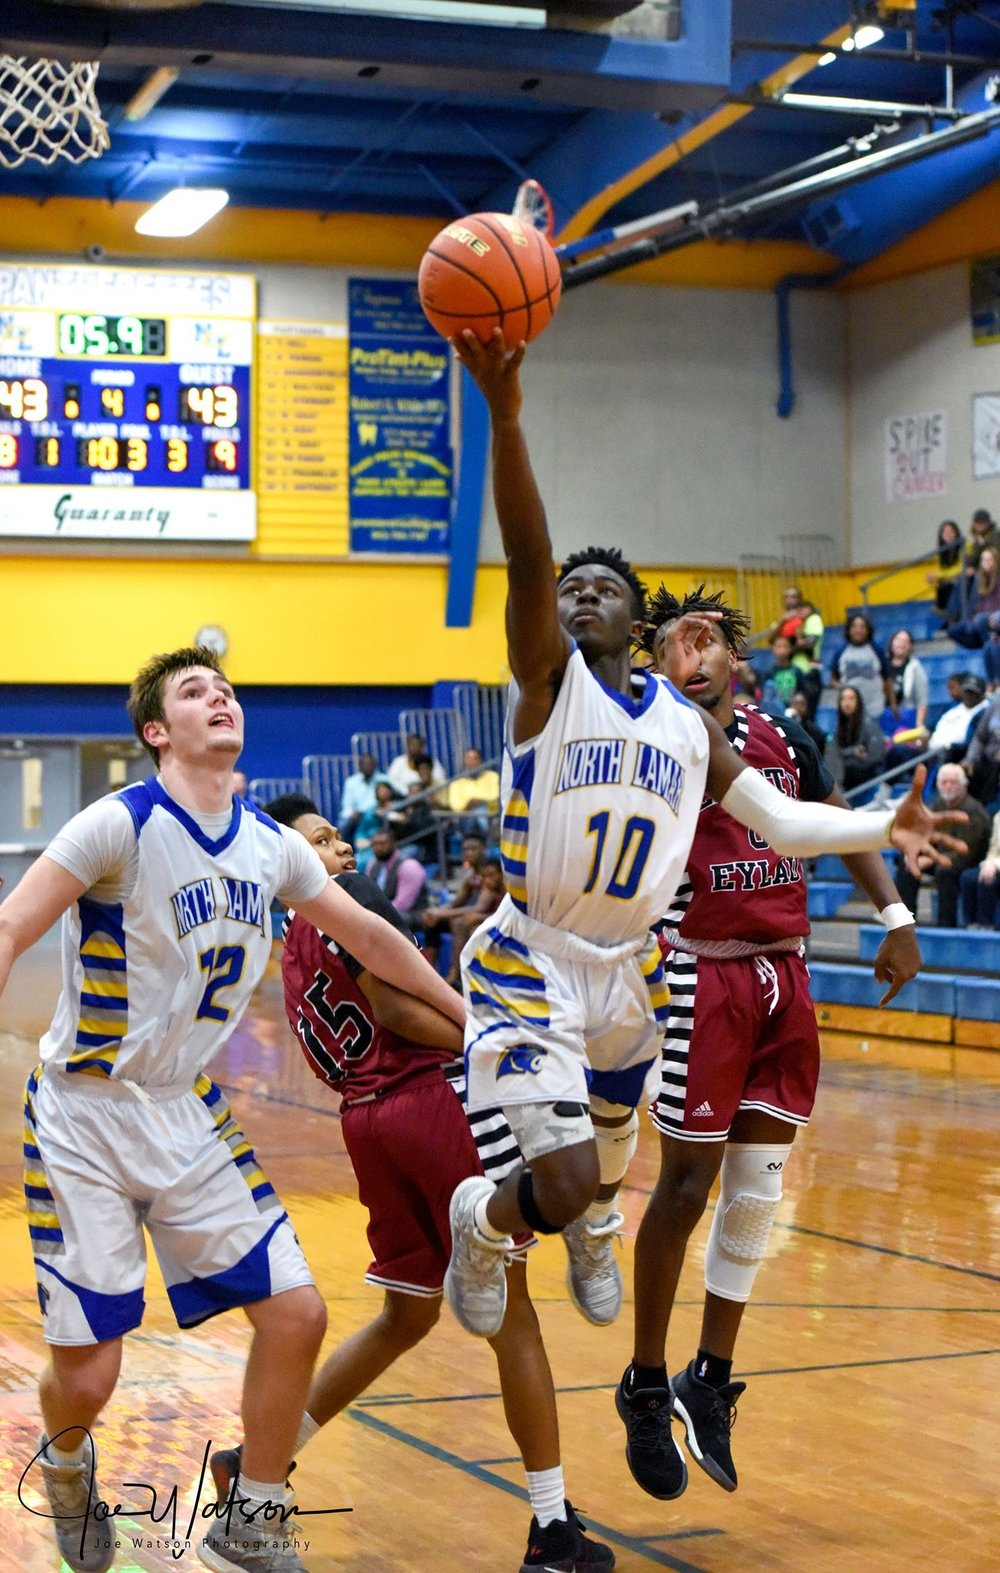 (Photo by Joe Watson) Jay Walters (10) with a layup to win the game for North Lamar as Jake Stewart (12) watches.